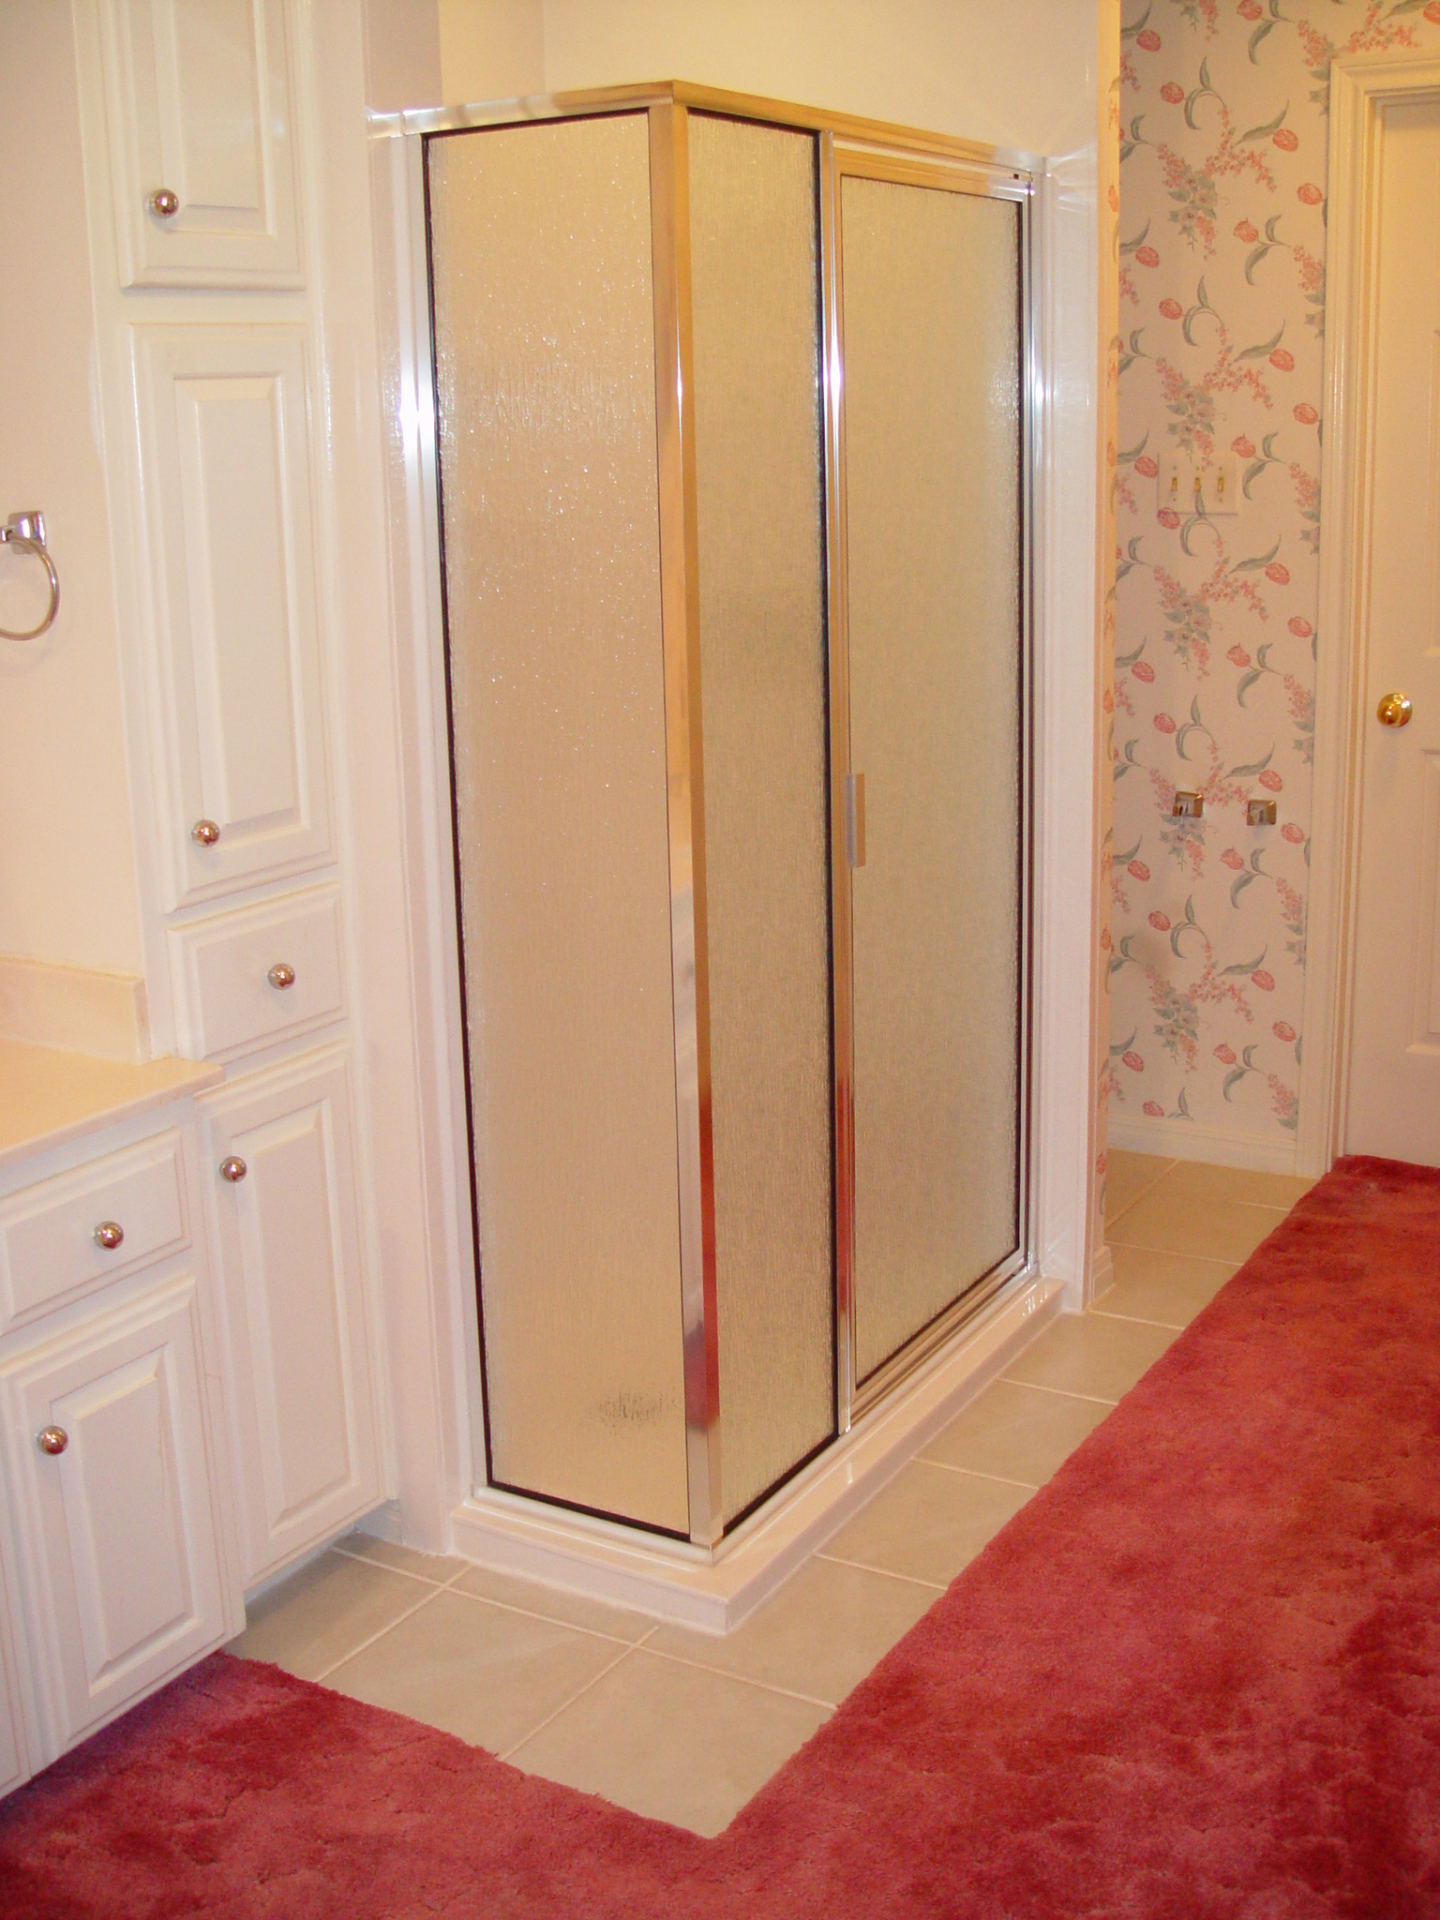 Recessed shower